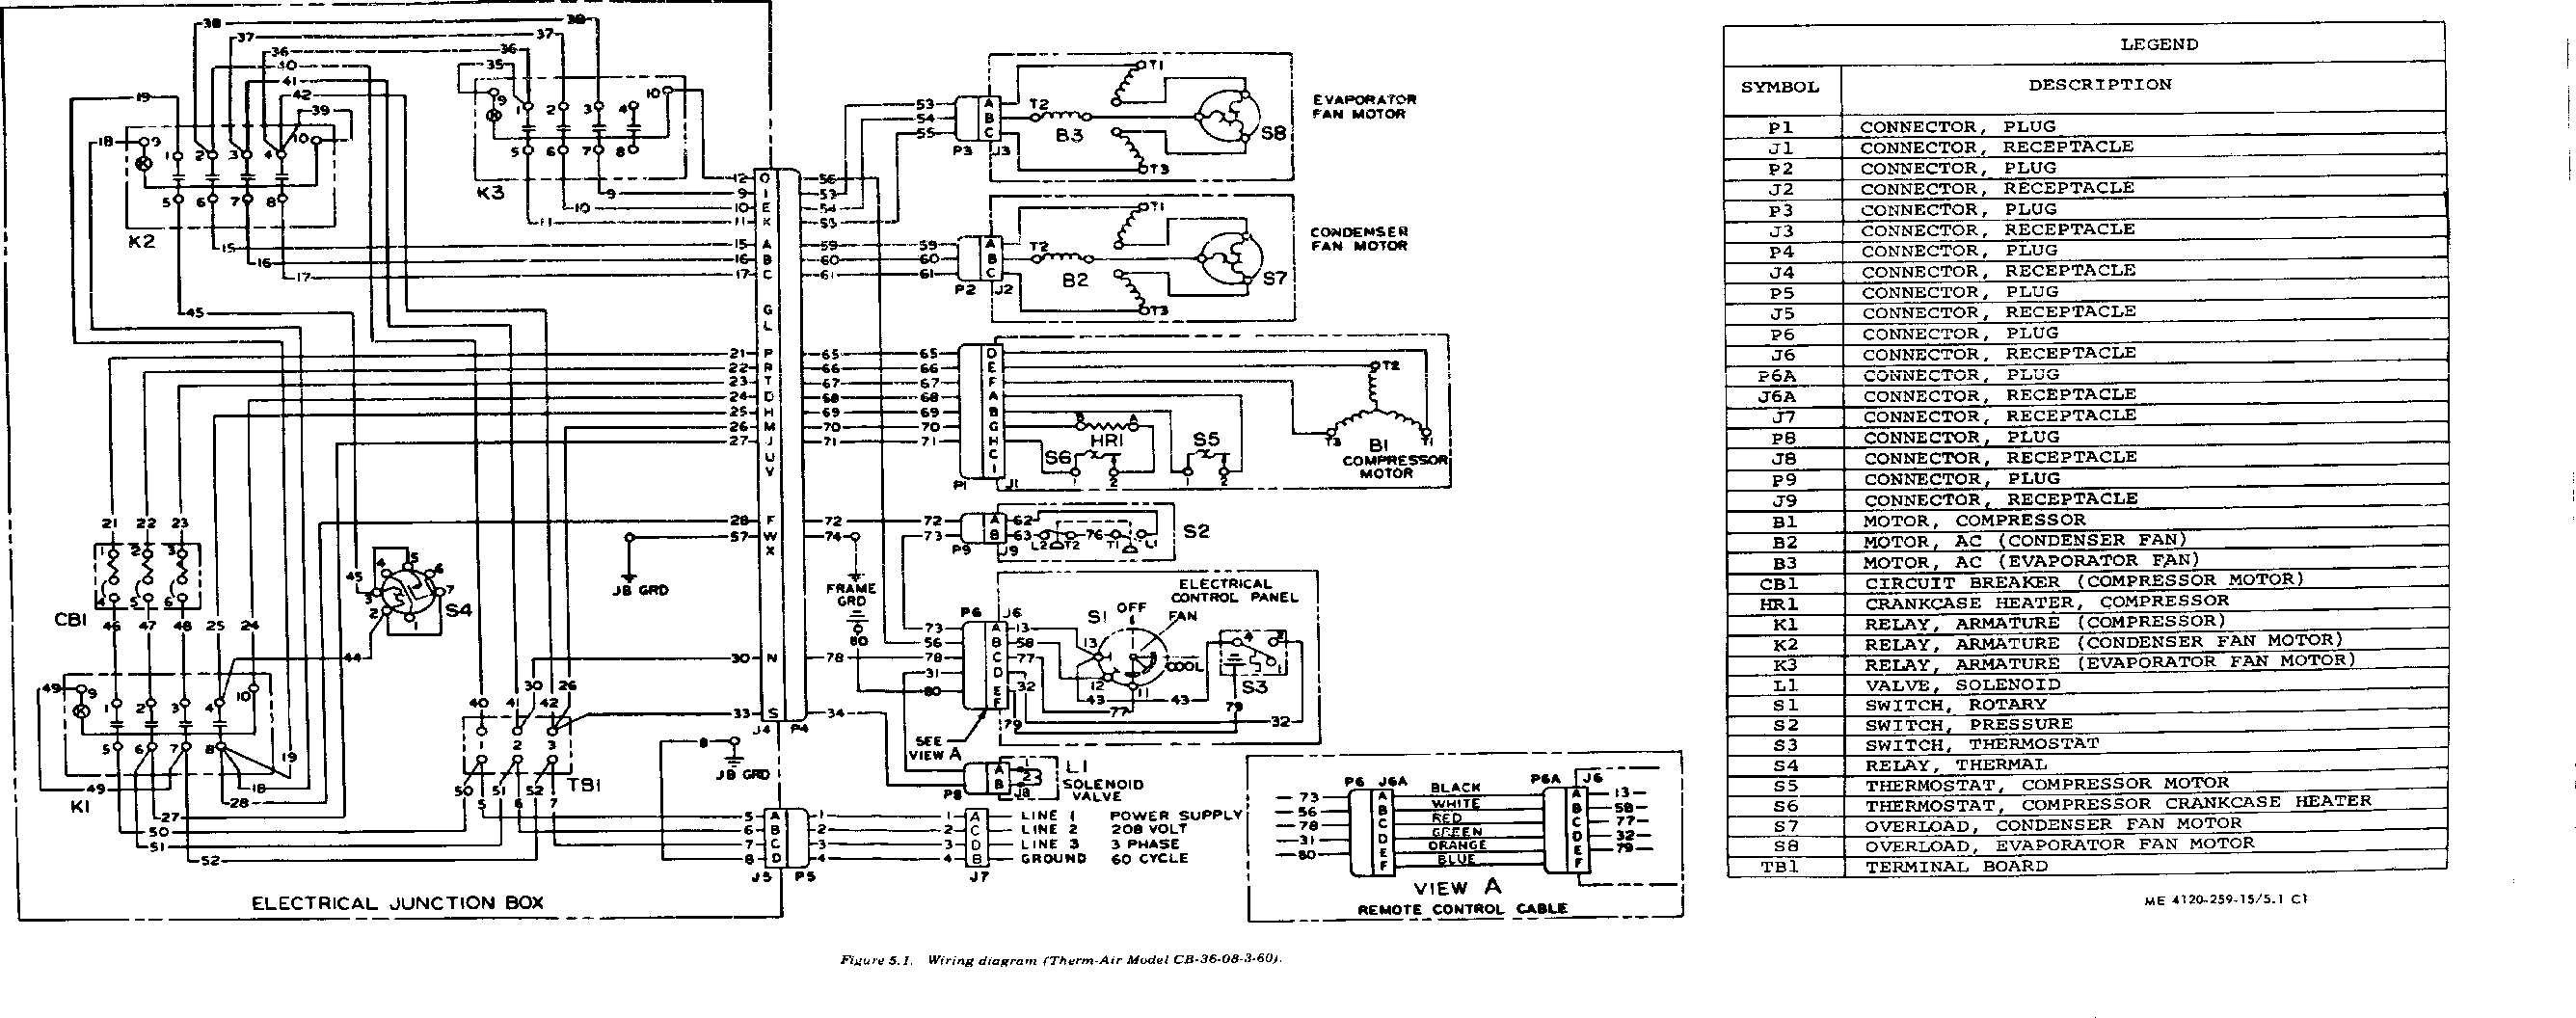 Trane Heat Pump Wiring Diagrams